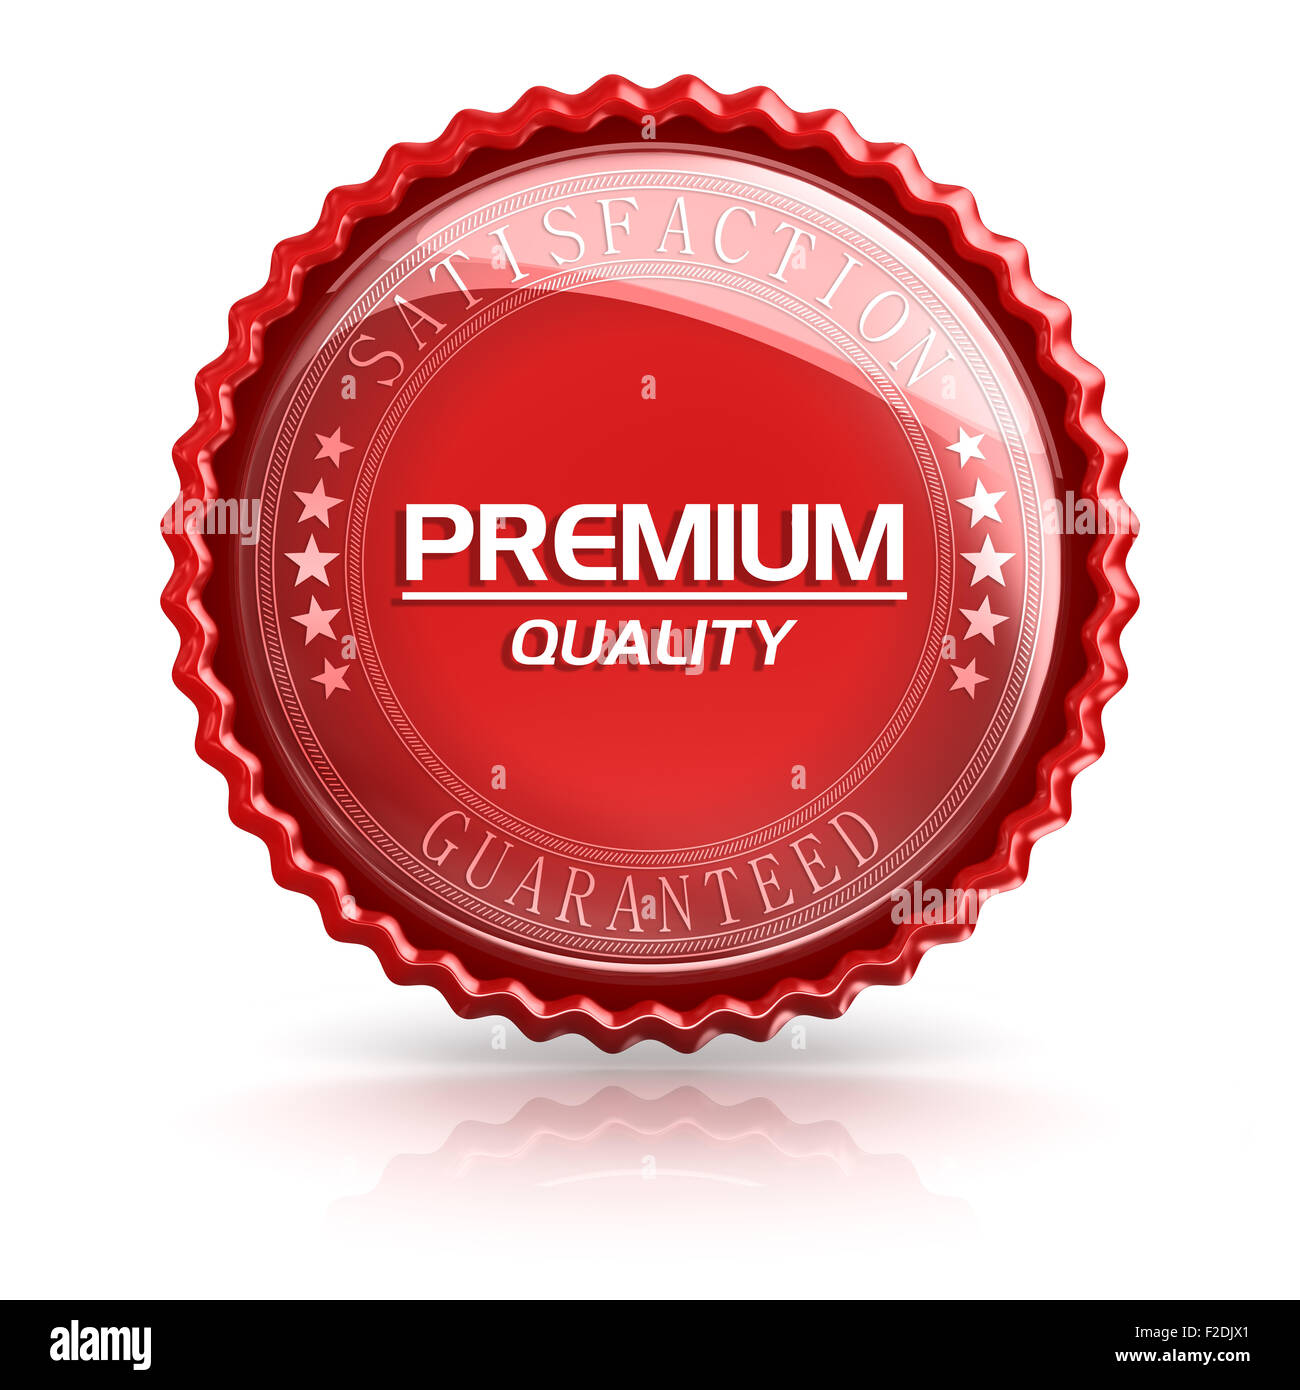 Premium Quality , 3d rendered image. - Stock Image